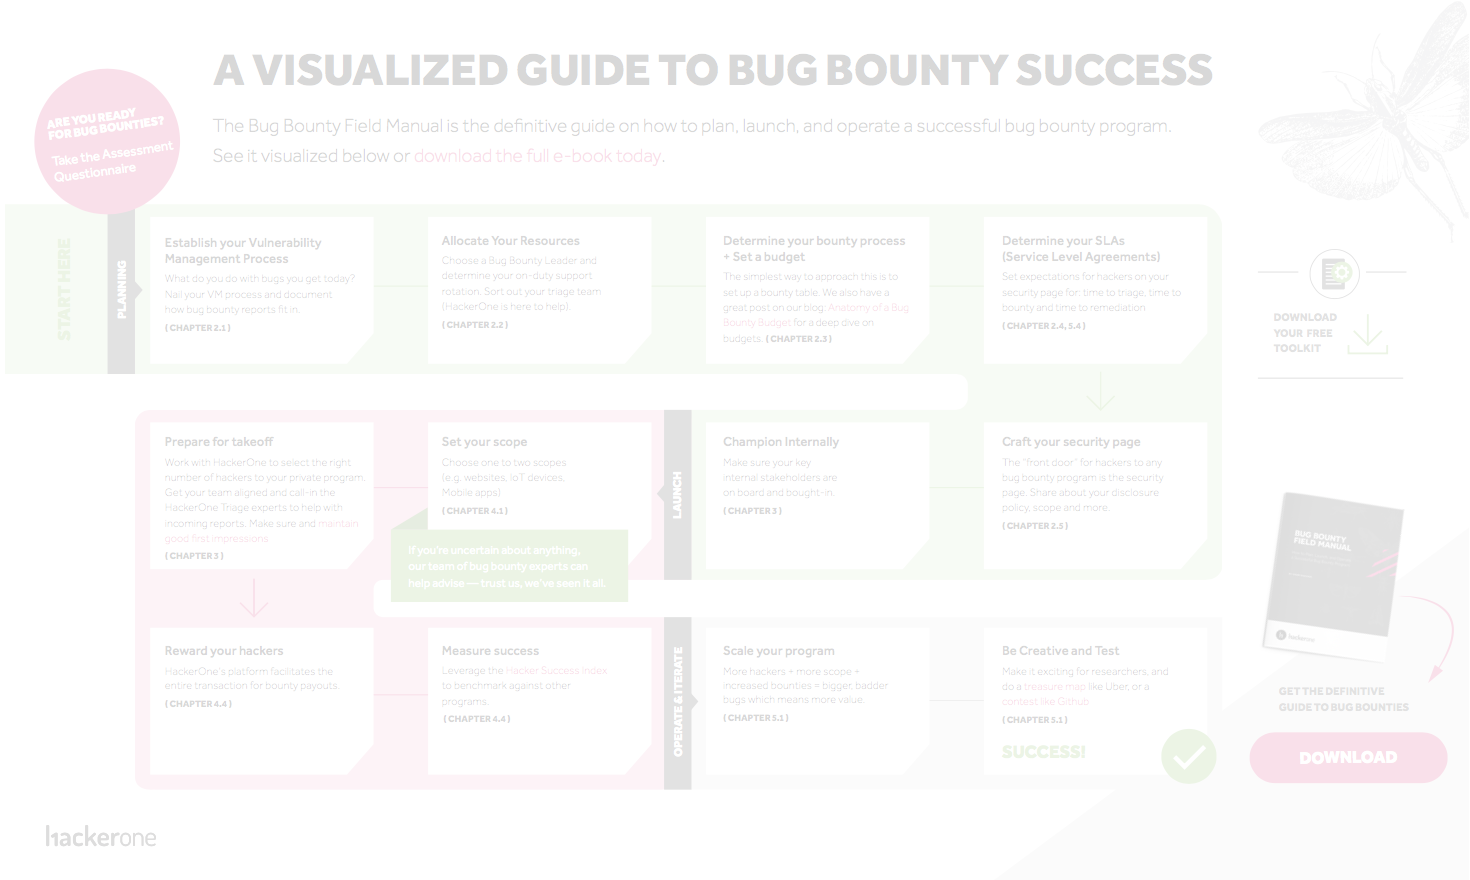 The Visualized Guide to Bug Bounty Success